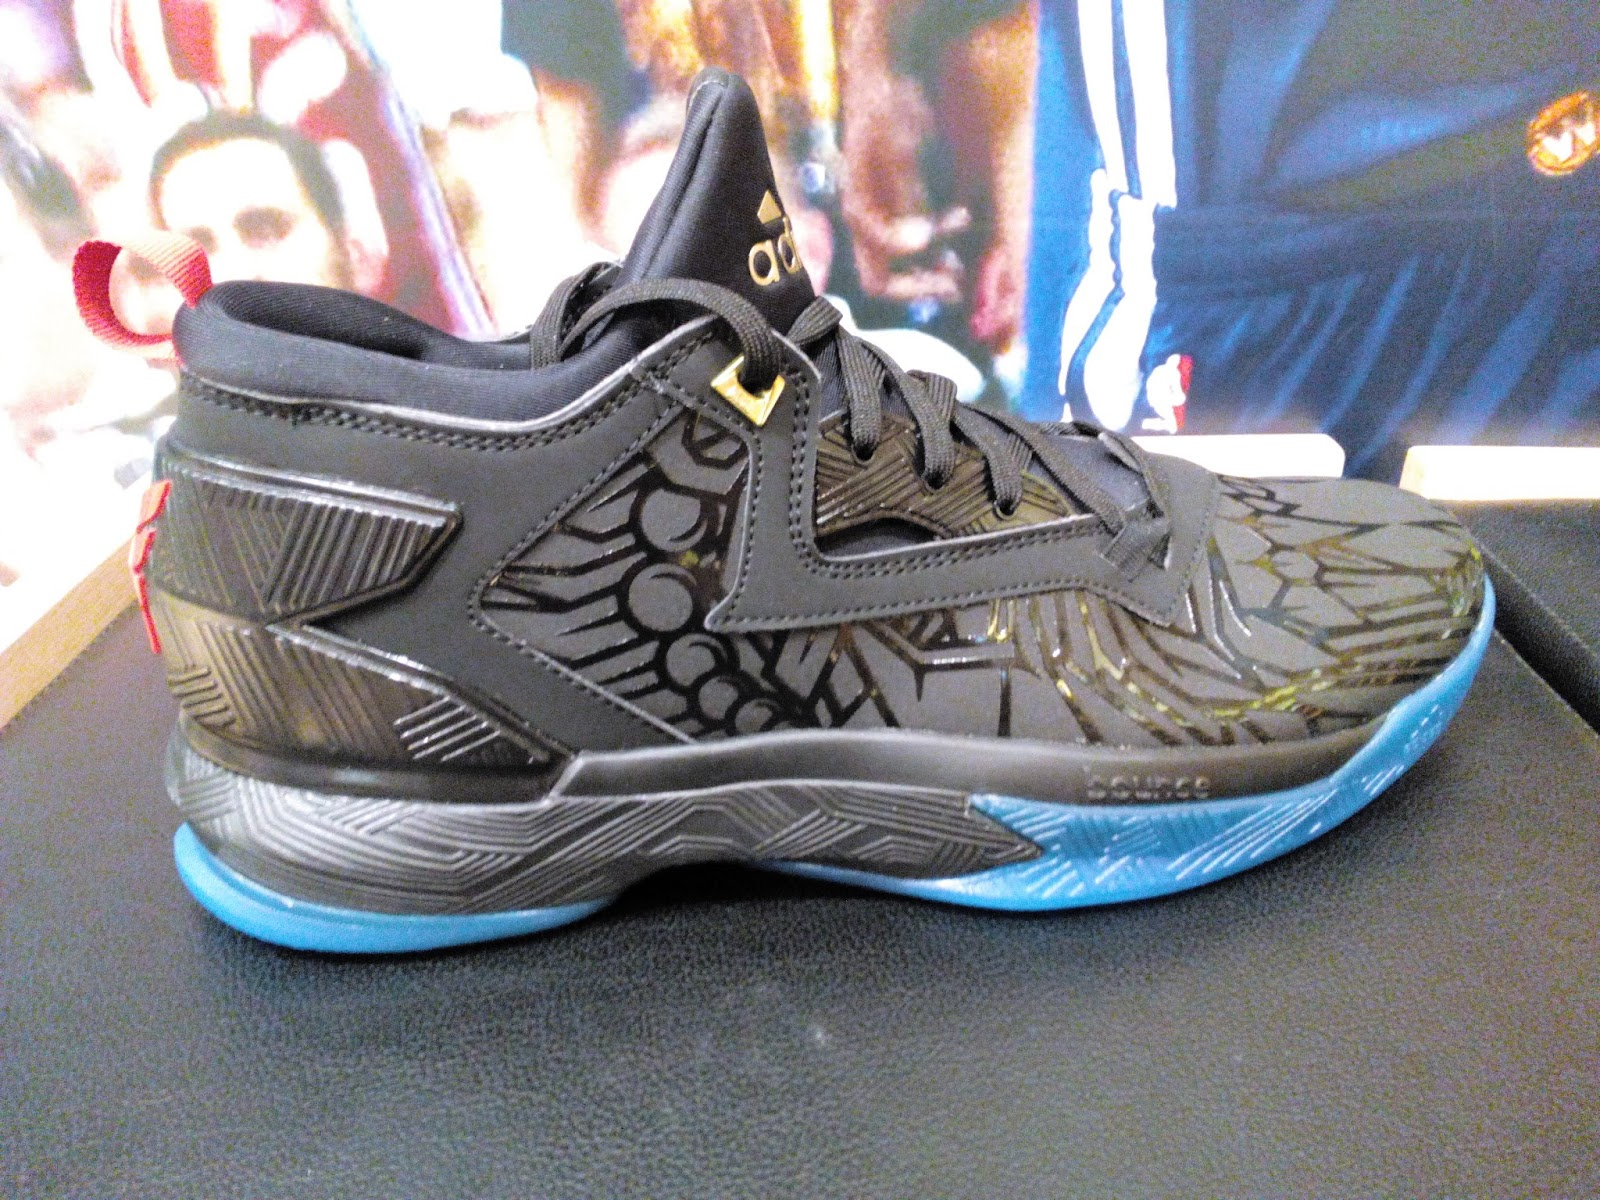 womens adidas d lillard 2 weartesters kd 8 blackout ez llc